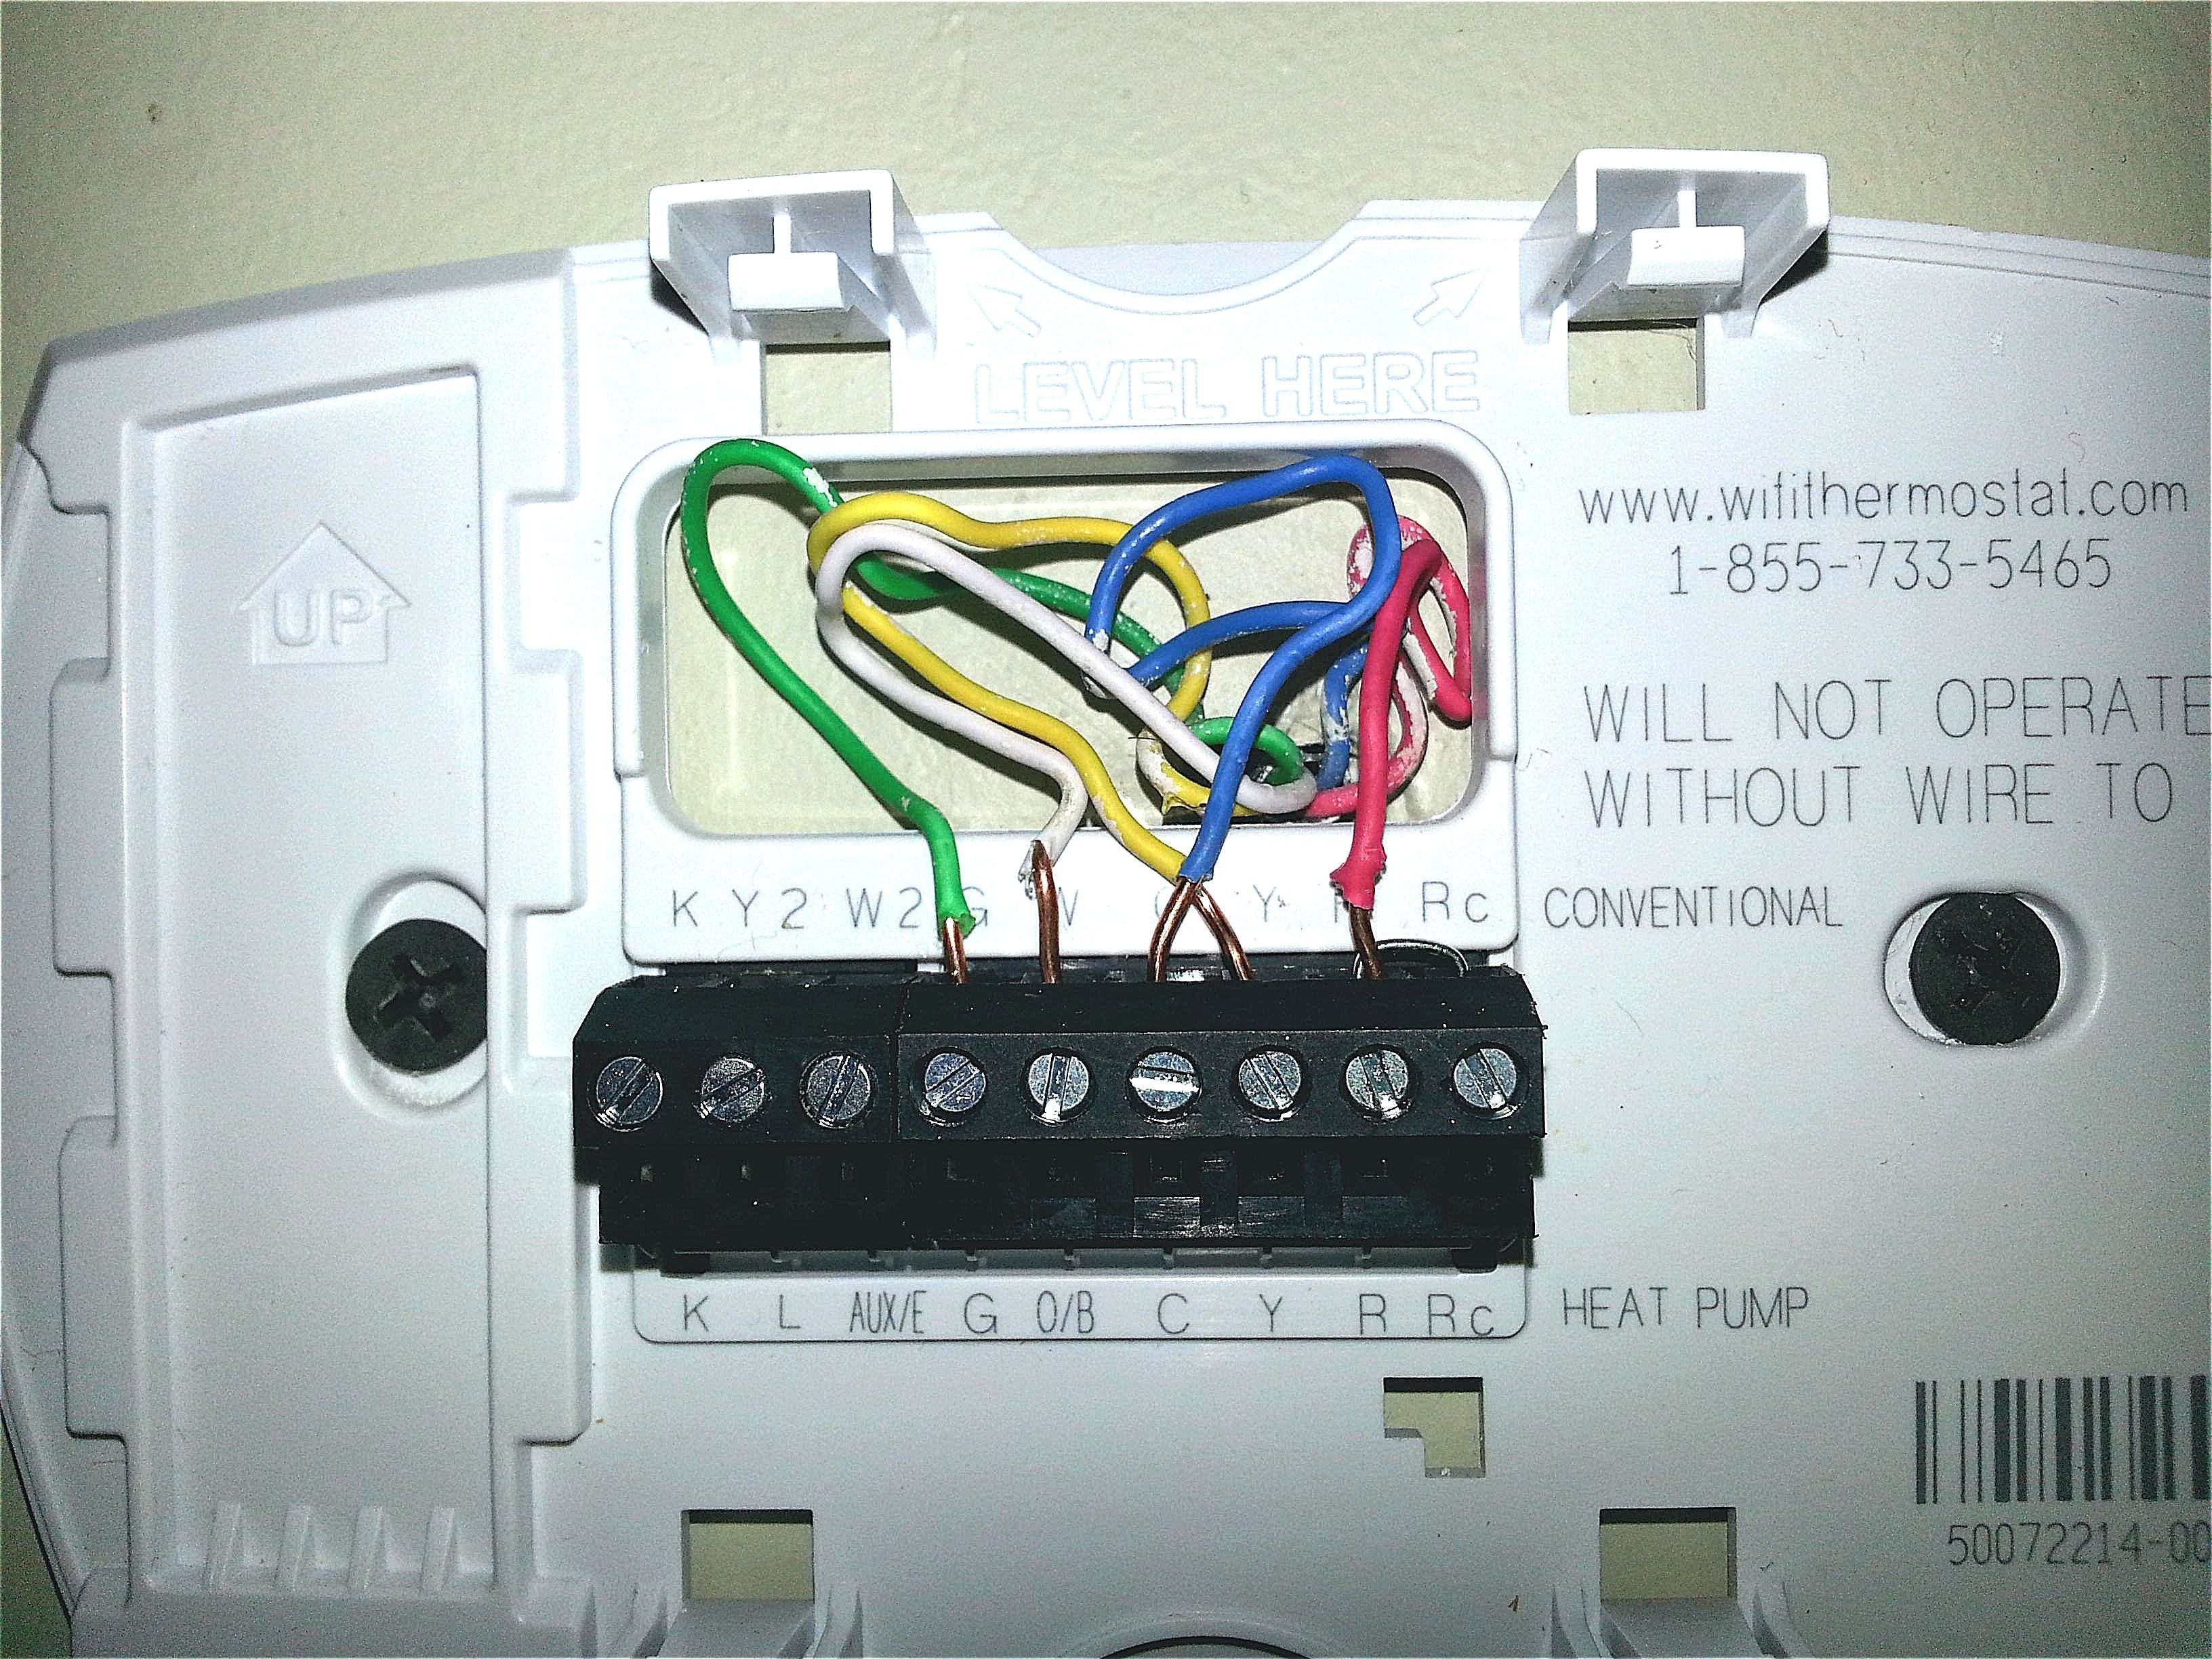 honeywell thermostat rth7600 wiring diagram honeywell thermostat t8011r wiring diagram honeywell th5220d1003 wiring diagram | free wiring diagram